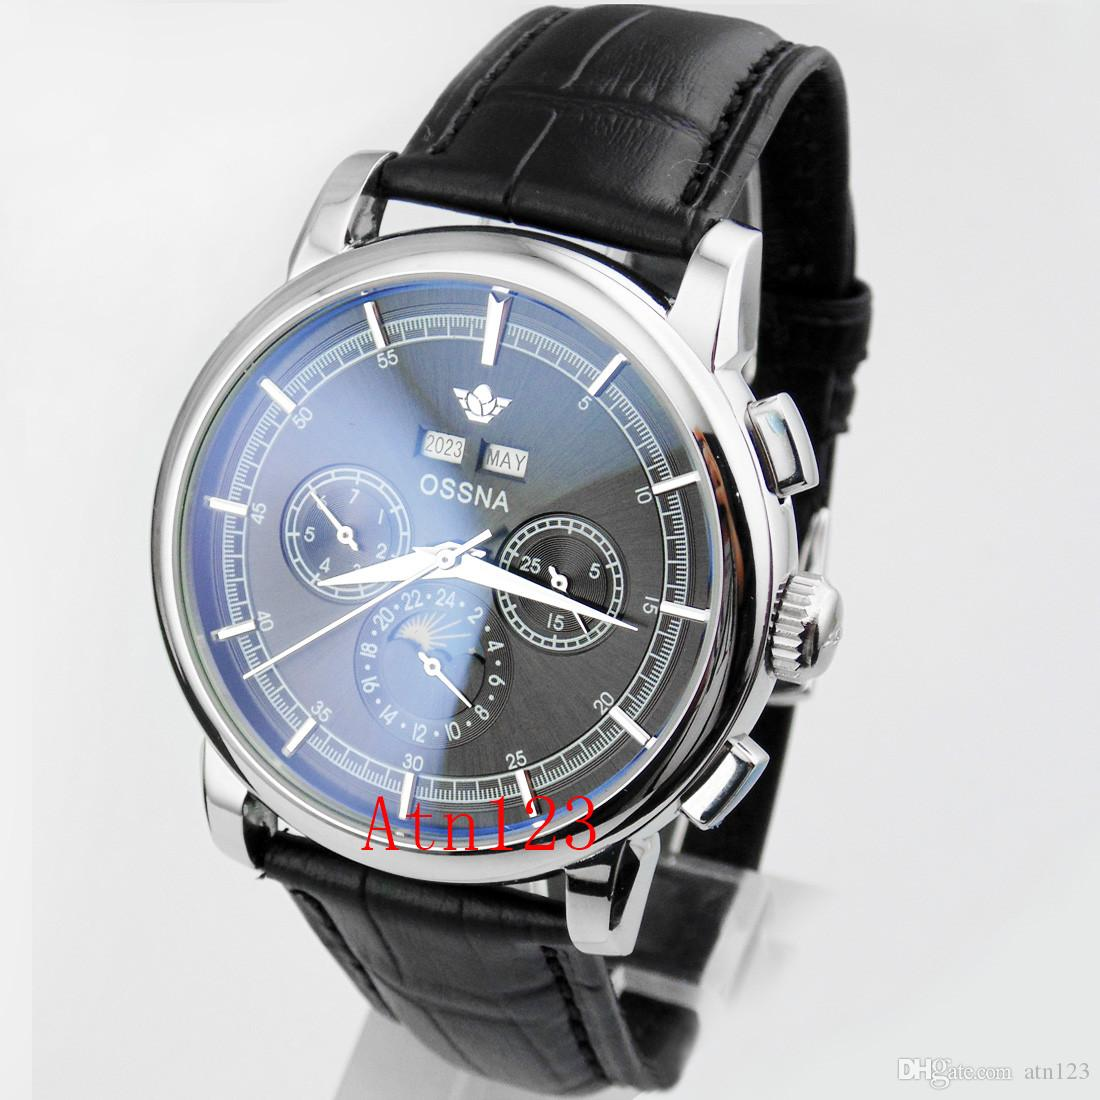 Ossna 42mm Black/White Automatic Mechanical Date Day Stainless Steel Watch 3ATM Water Resistantance Rating Wristwatch 1657/1671/1858